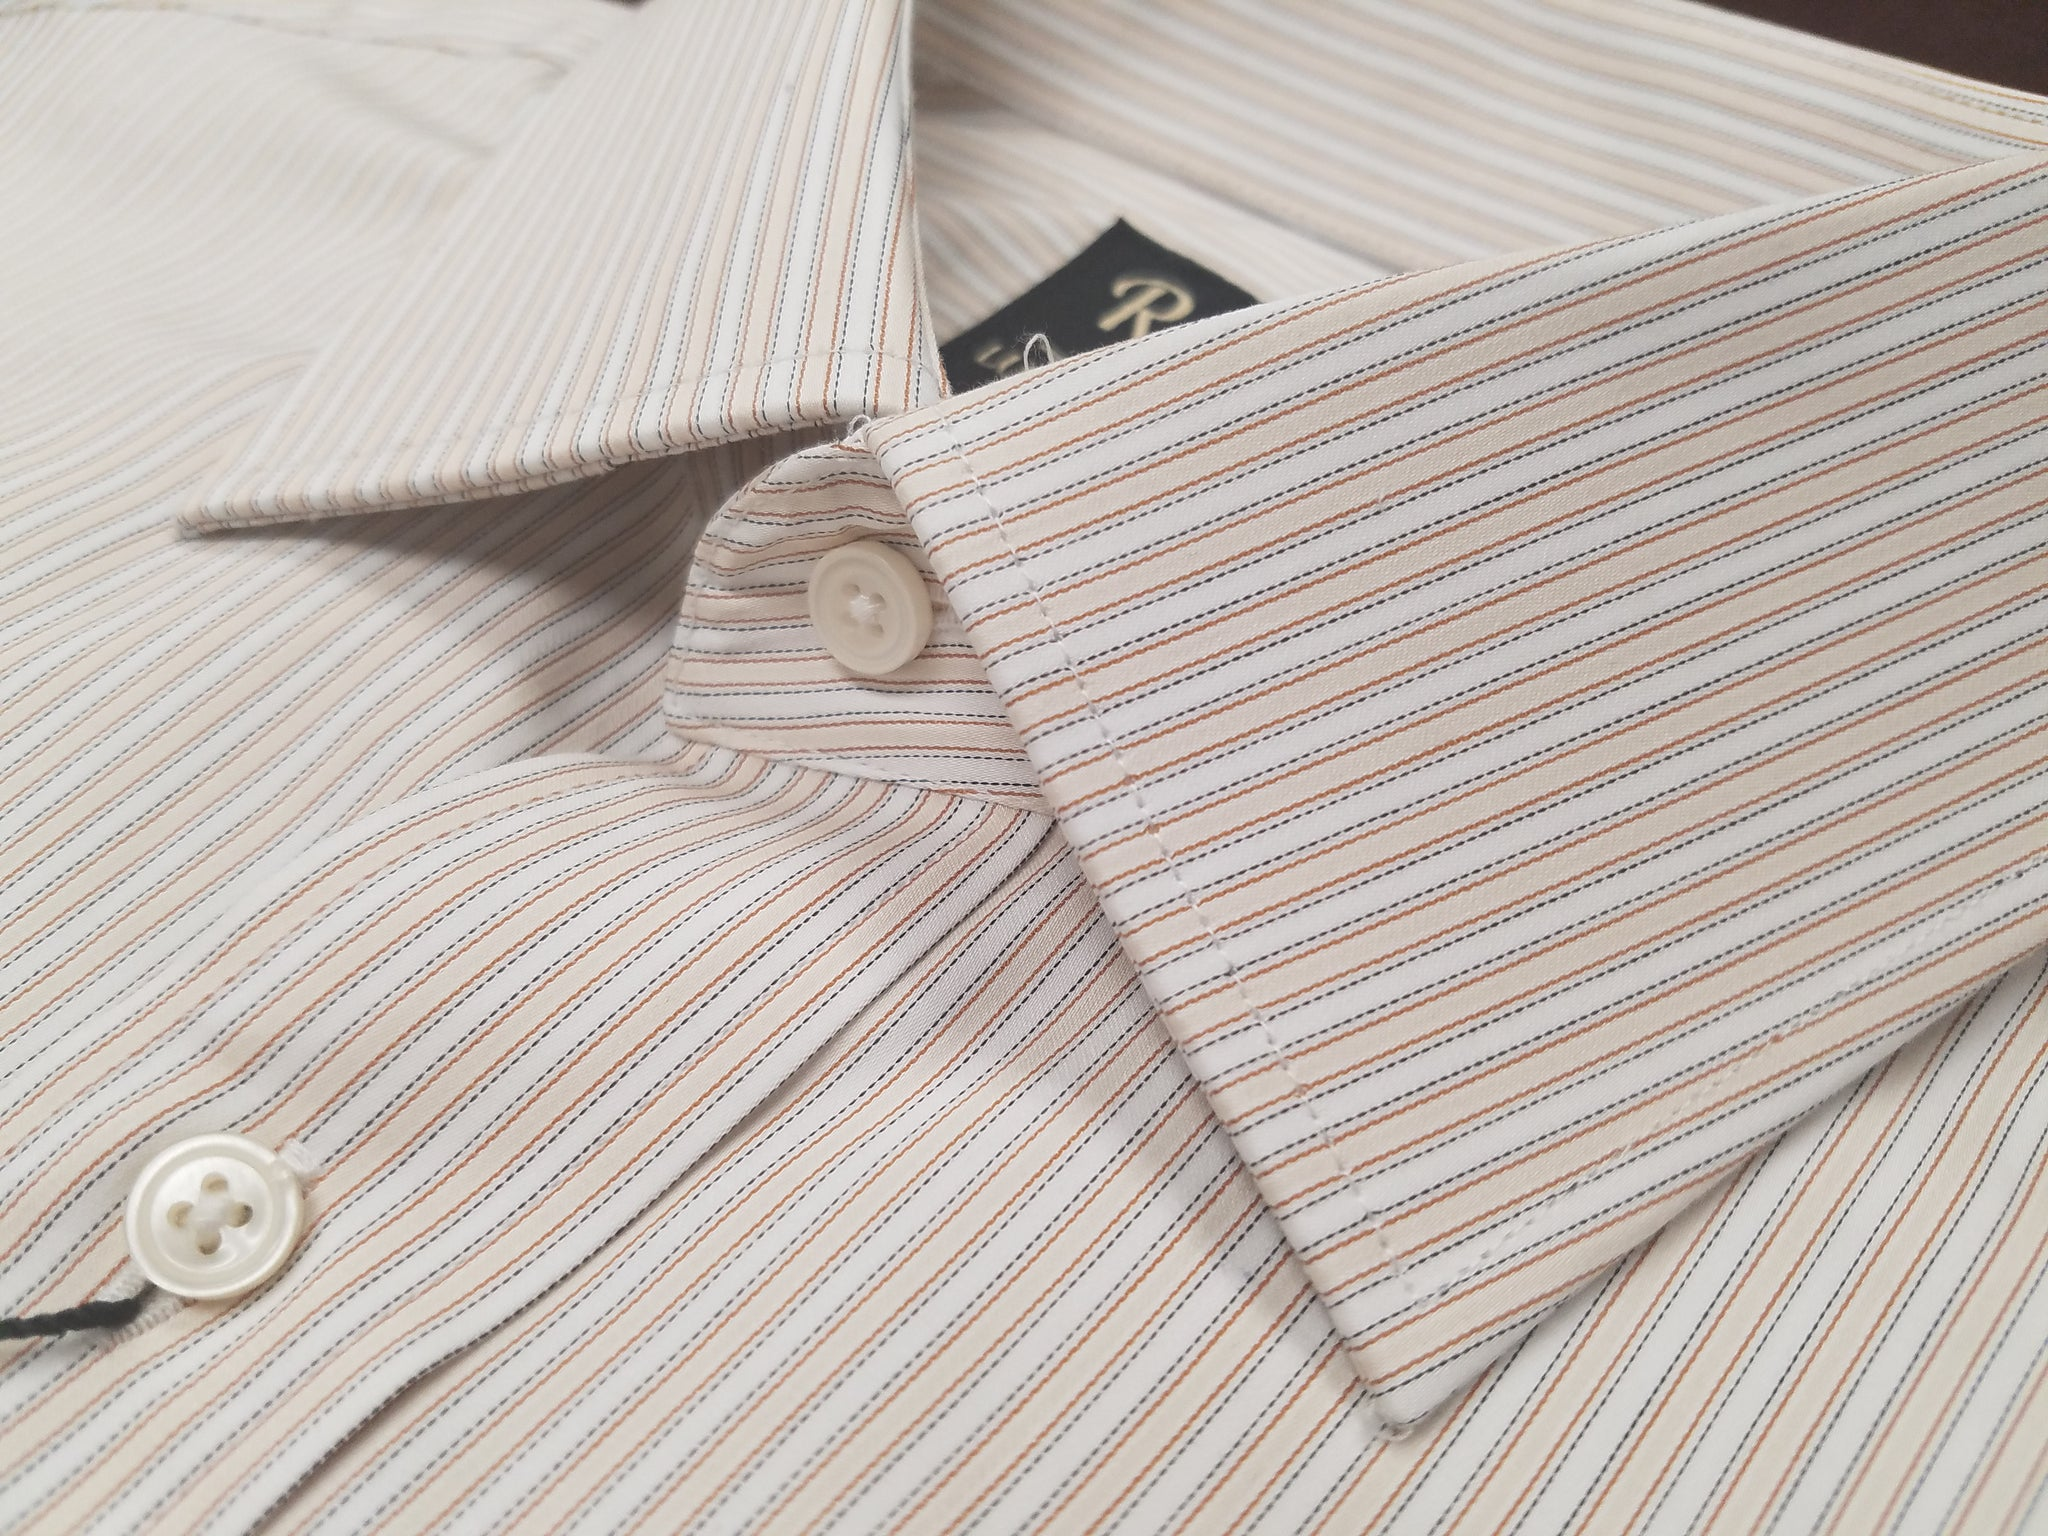 Rainwater's Luxury Collection 100% Cotton Tan Stripe French Cuff Dress Shirt - Rainwater's Men's Clothing and Tuxedo Rental